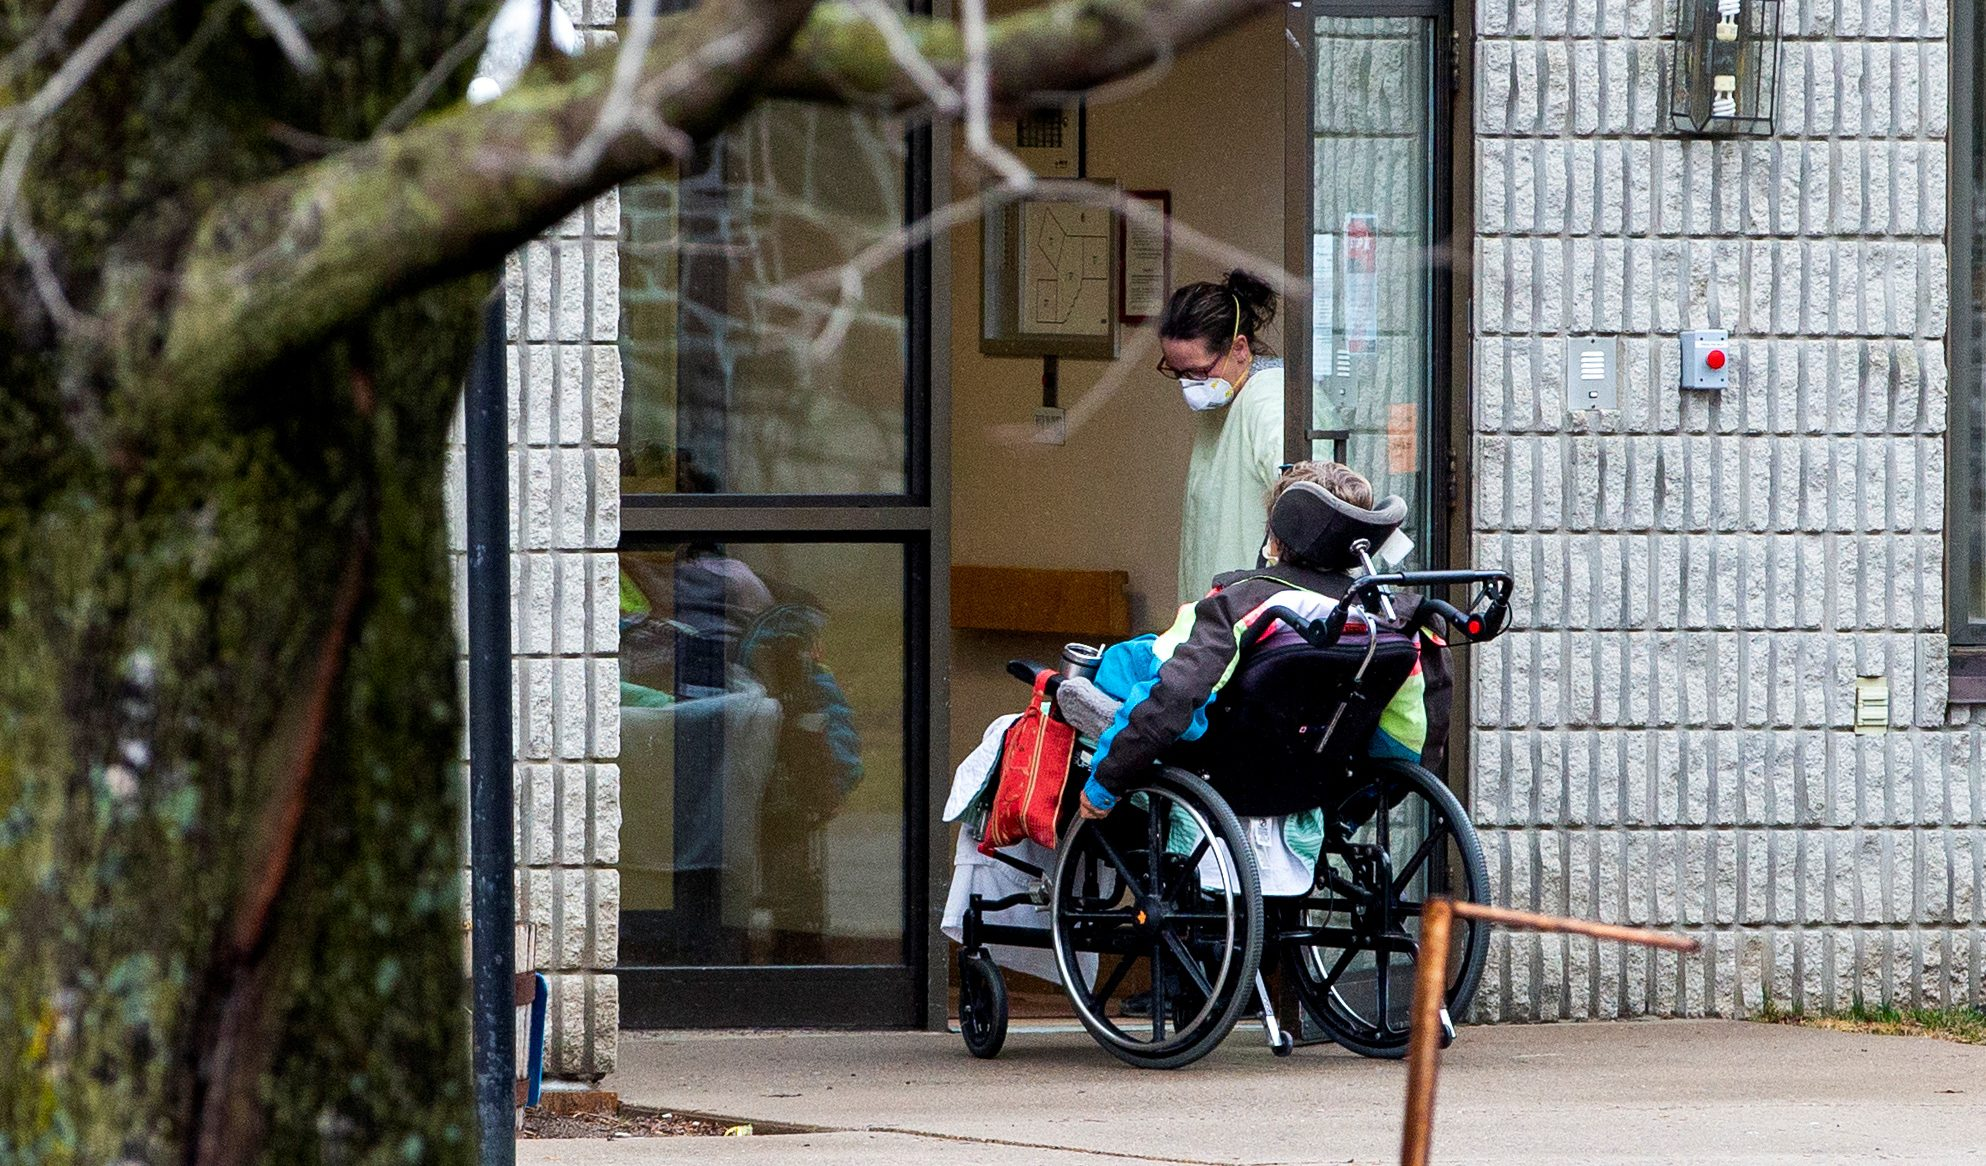 FILE PHOTO: A woman opens the door to a person in a wheelchair at Pinecrest Nursing Home after several residents died and dozens of staff were sickened due to coronavirus disease (COVID-19), in Bobcaygeon, Ontario, Canada March 30, 2020.